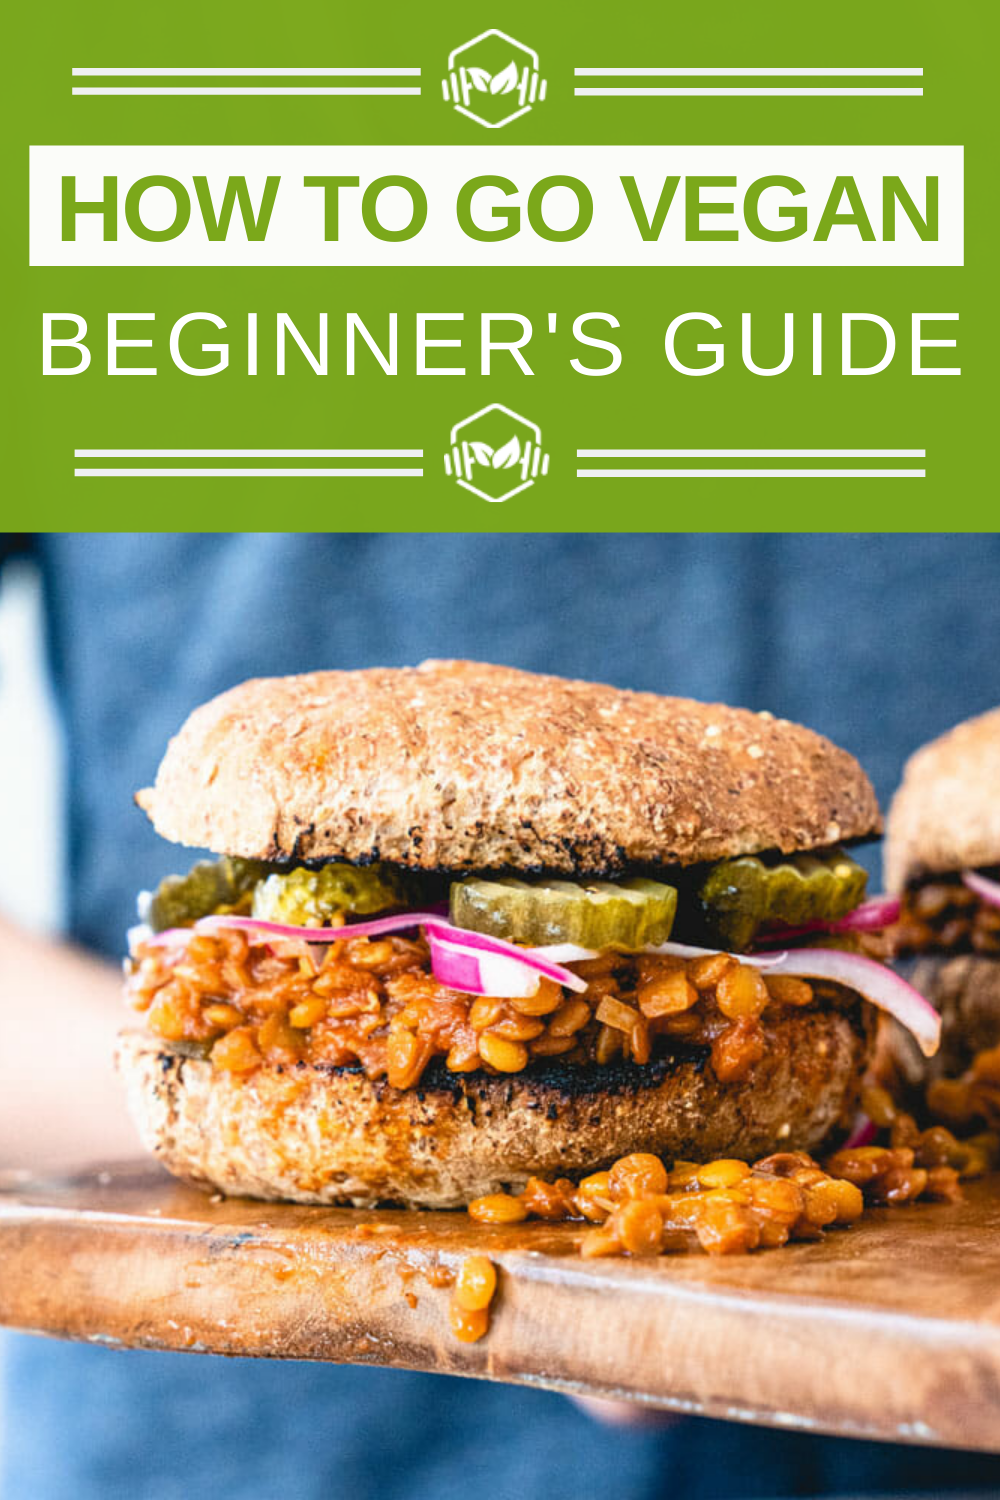 Vegan Liftz Ideas: How to Become a Vegan: A Beginner's Guide for an Easy Transition - I promise you that there is still plenty of delicious food left in the world when you take out non-vegan foods. Instead of focusing on what you might be losing out on, focus on what you are gaining by eating a vegan diet. #vegan #vegane #veganhealth #veganlife #veganlifestyle #vegannews #vegans #veganuk